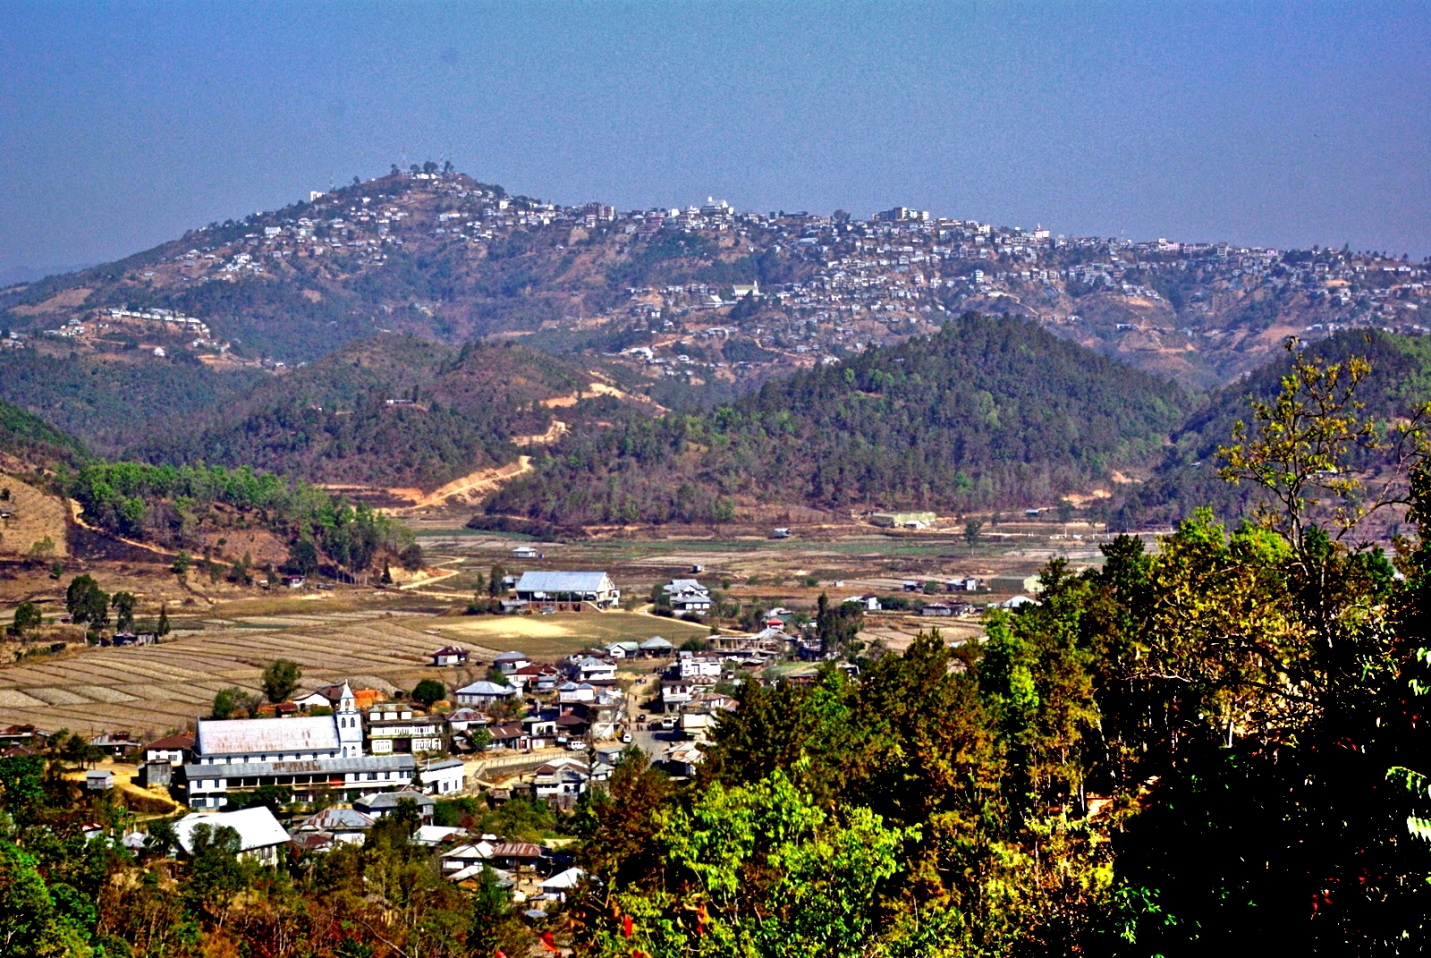 A VIEW OF CHAMPAI TOWN IN MIZORAM WHICH LIES CLOSE TO MYANMAR BORDER